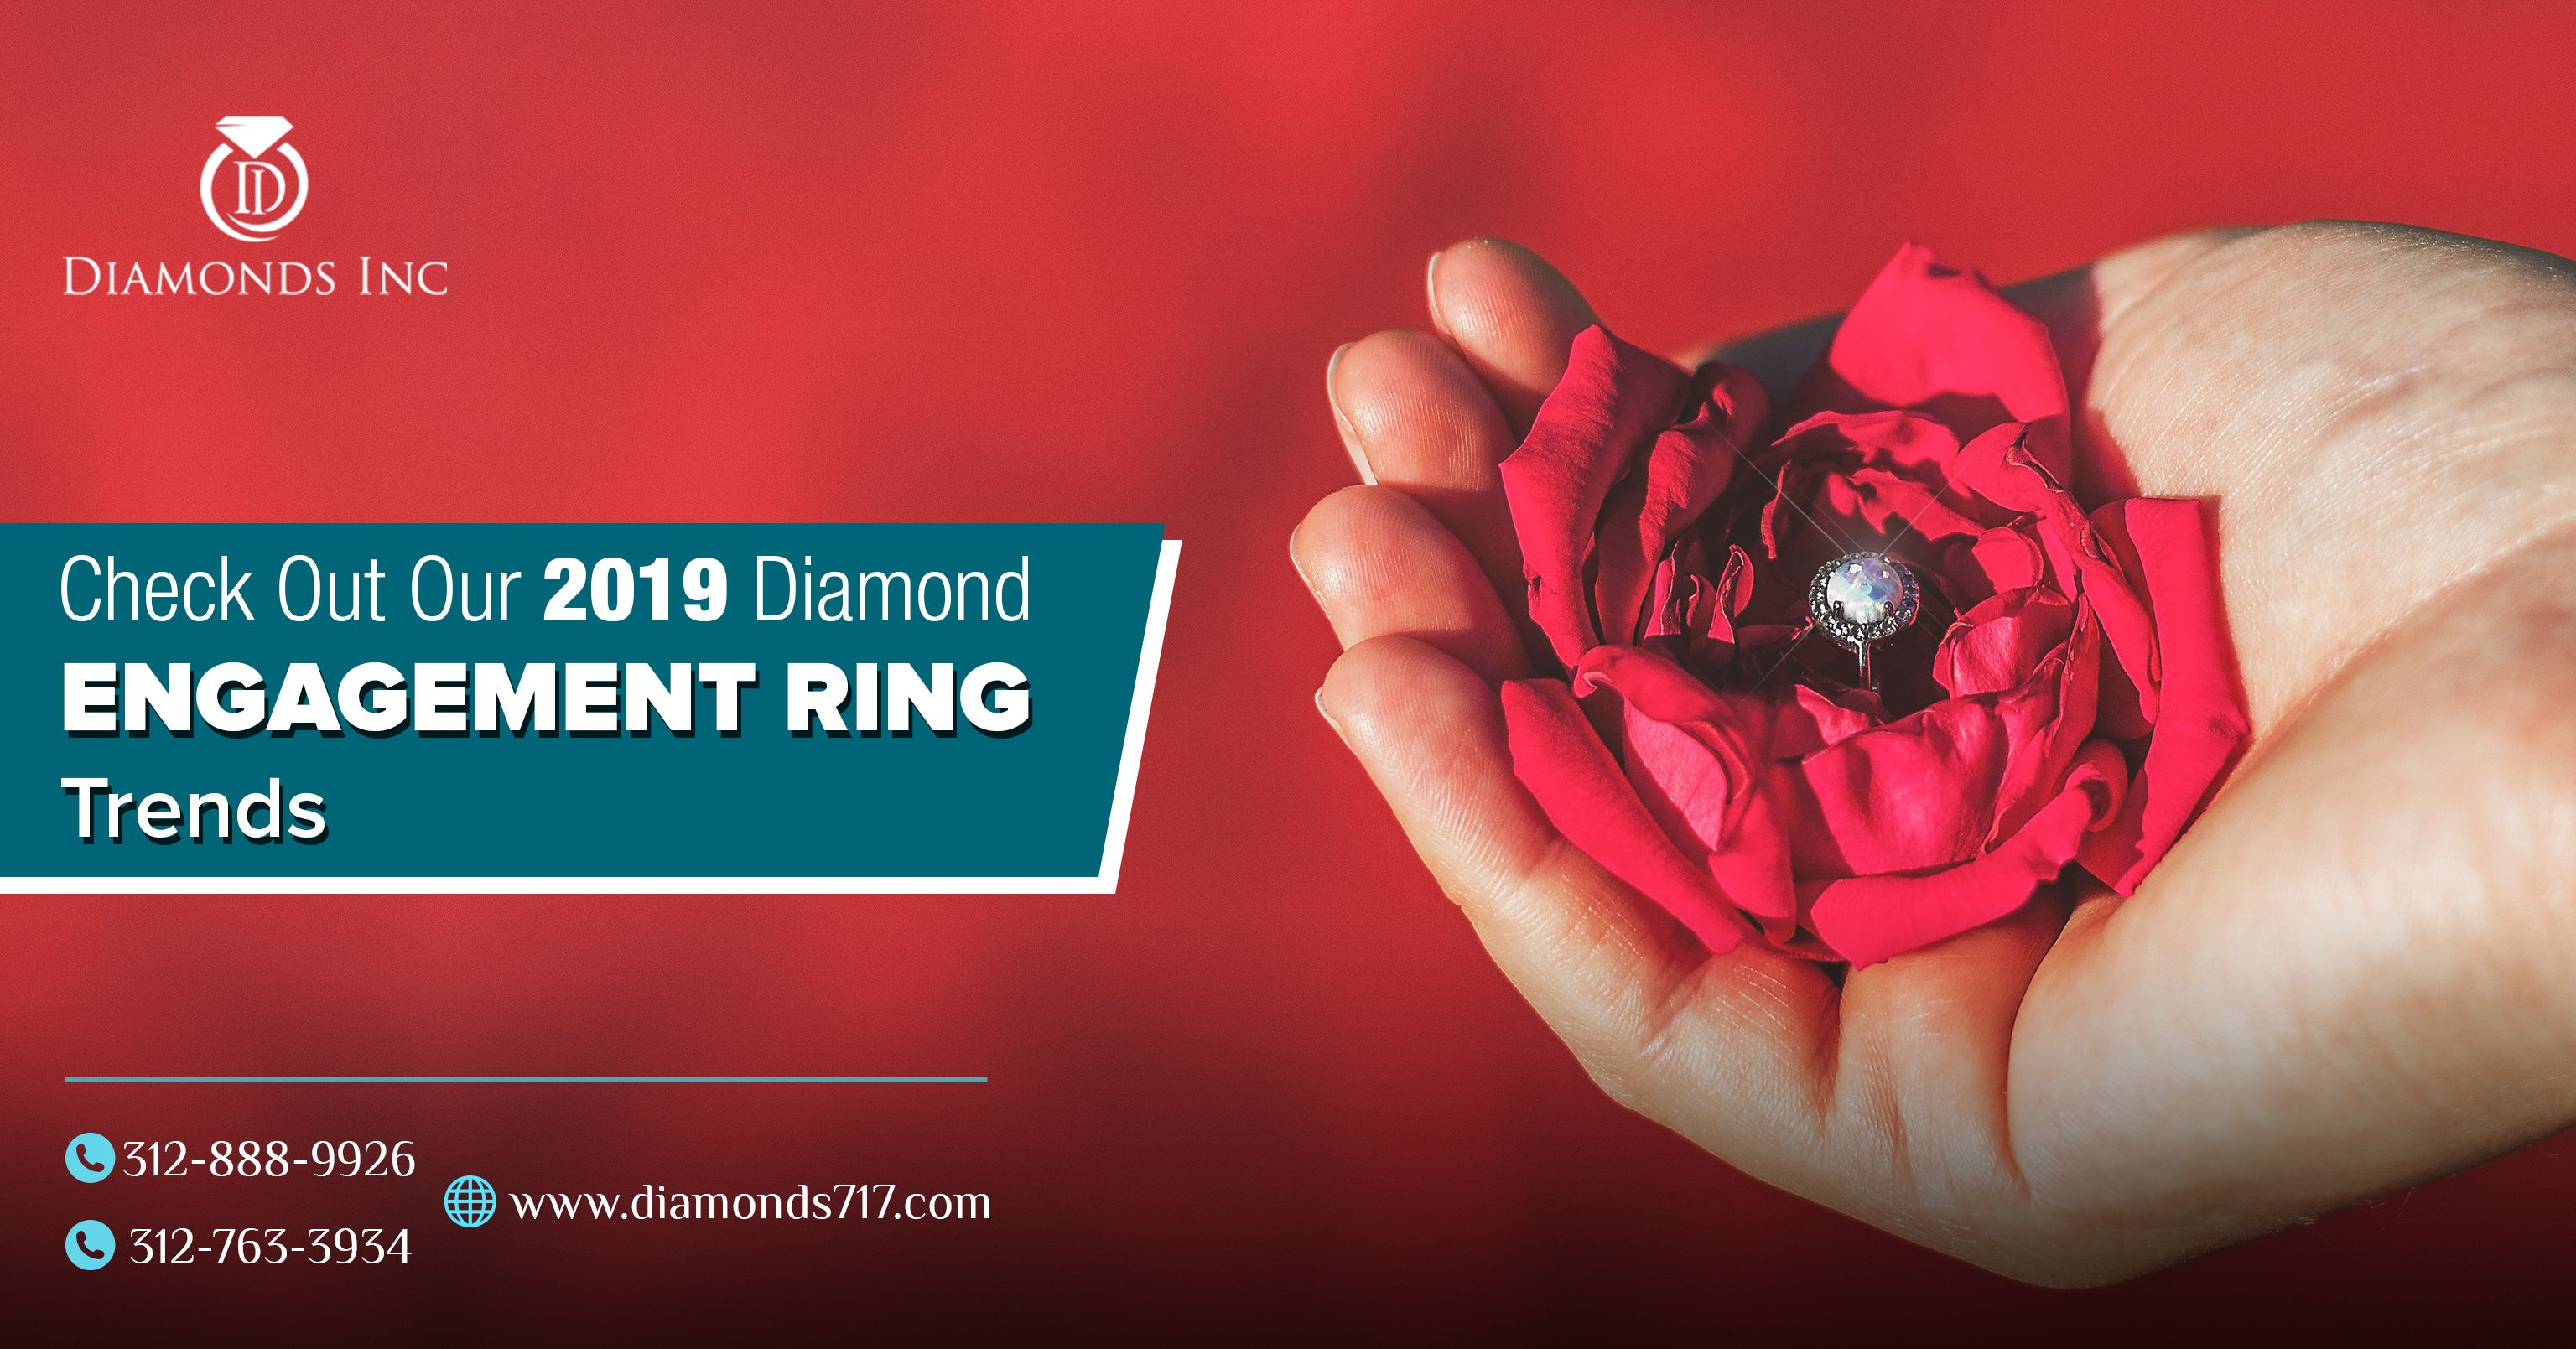 Check Out Our 2019 Diamond Engagement Ring Trends